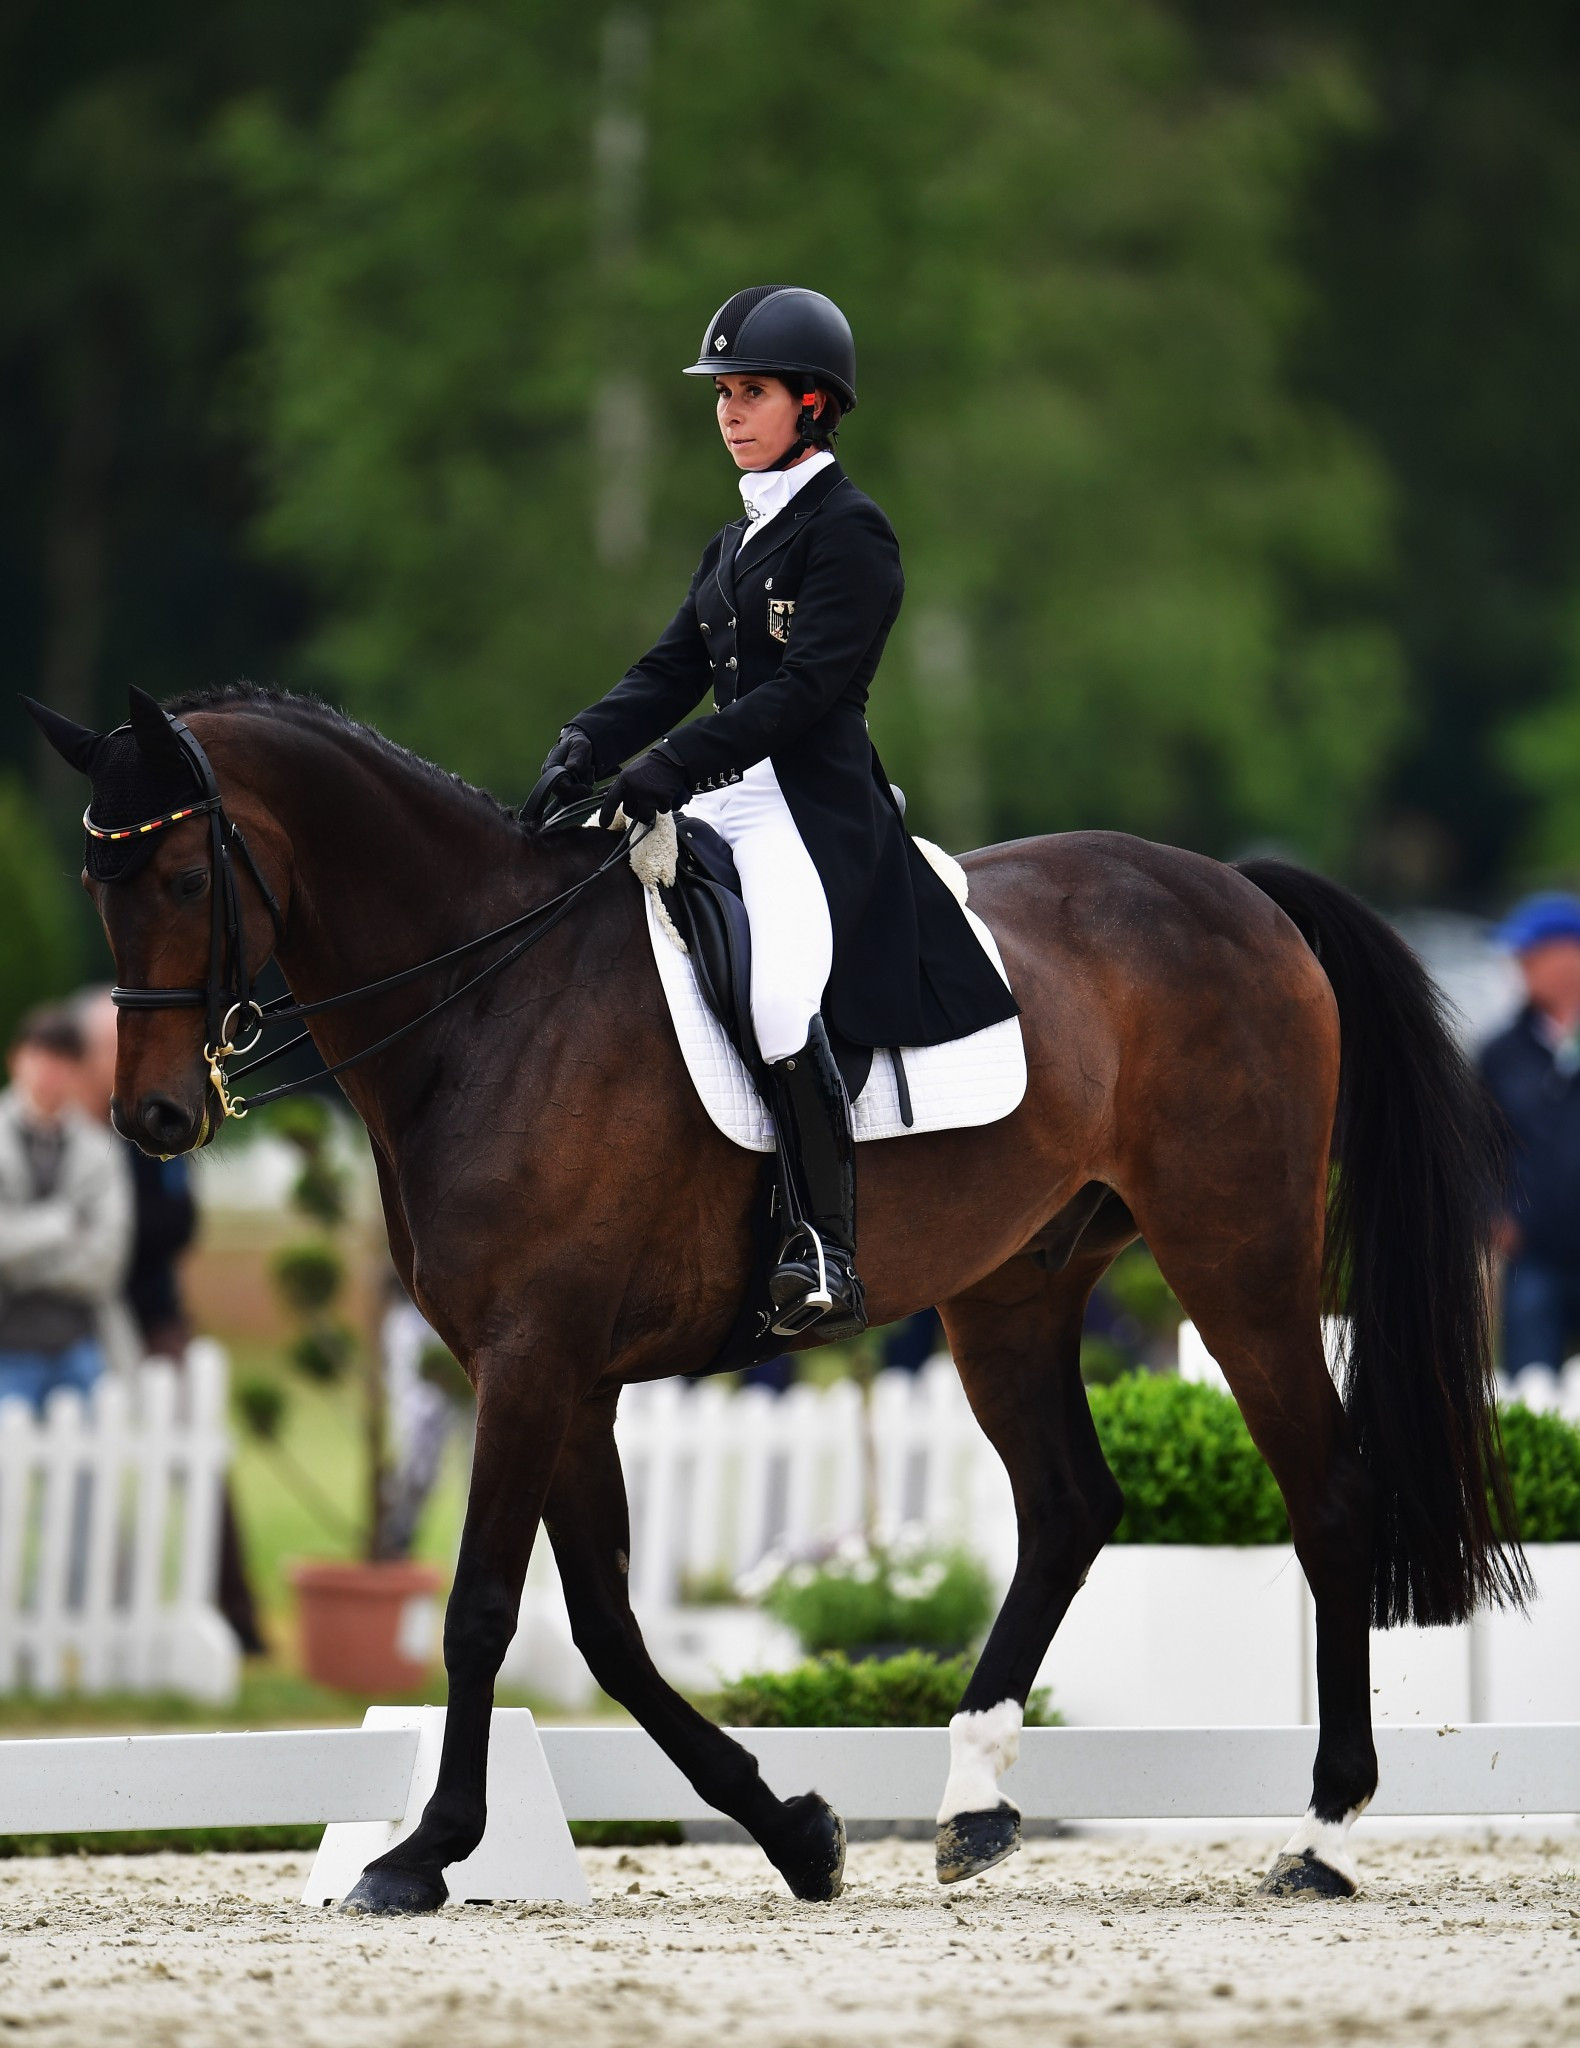 Bettina Hoy leads after the opening day of dressage ©Getty Images